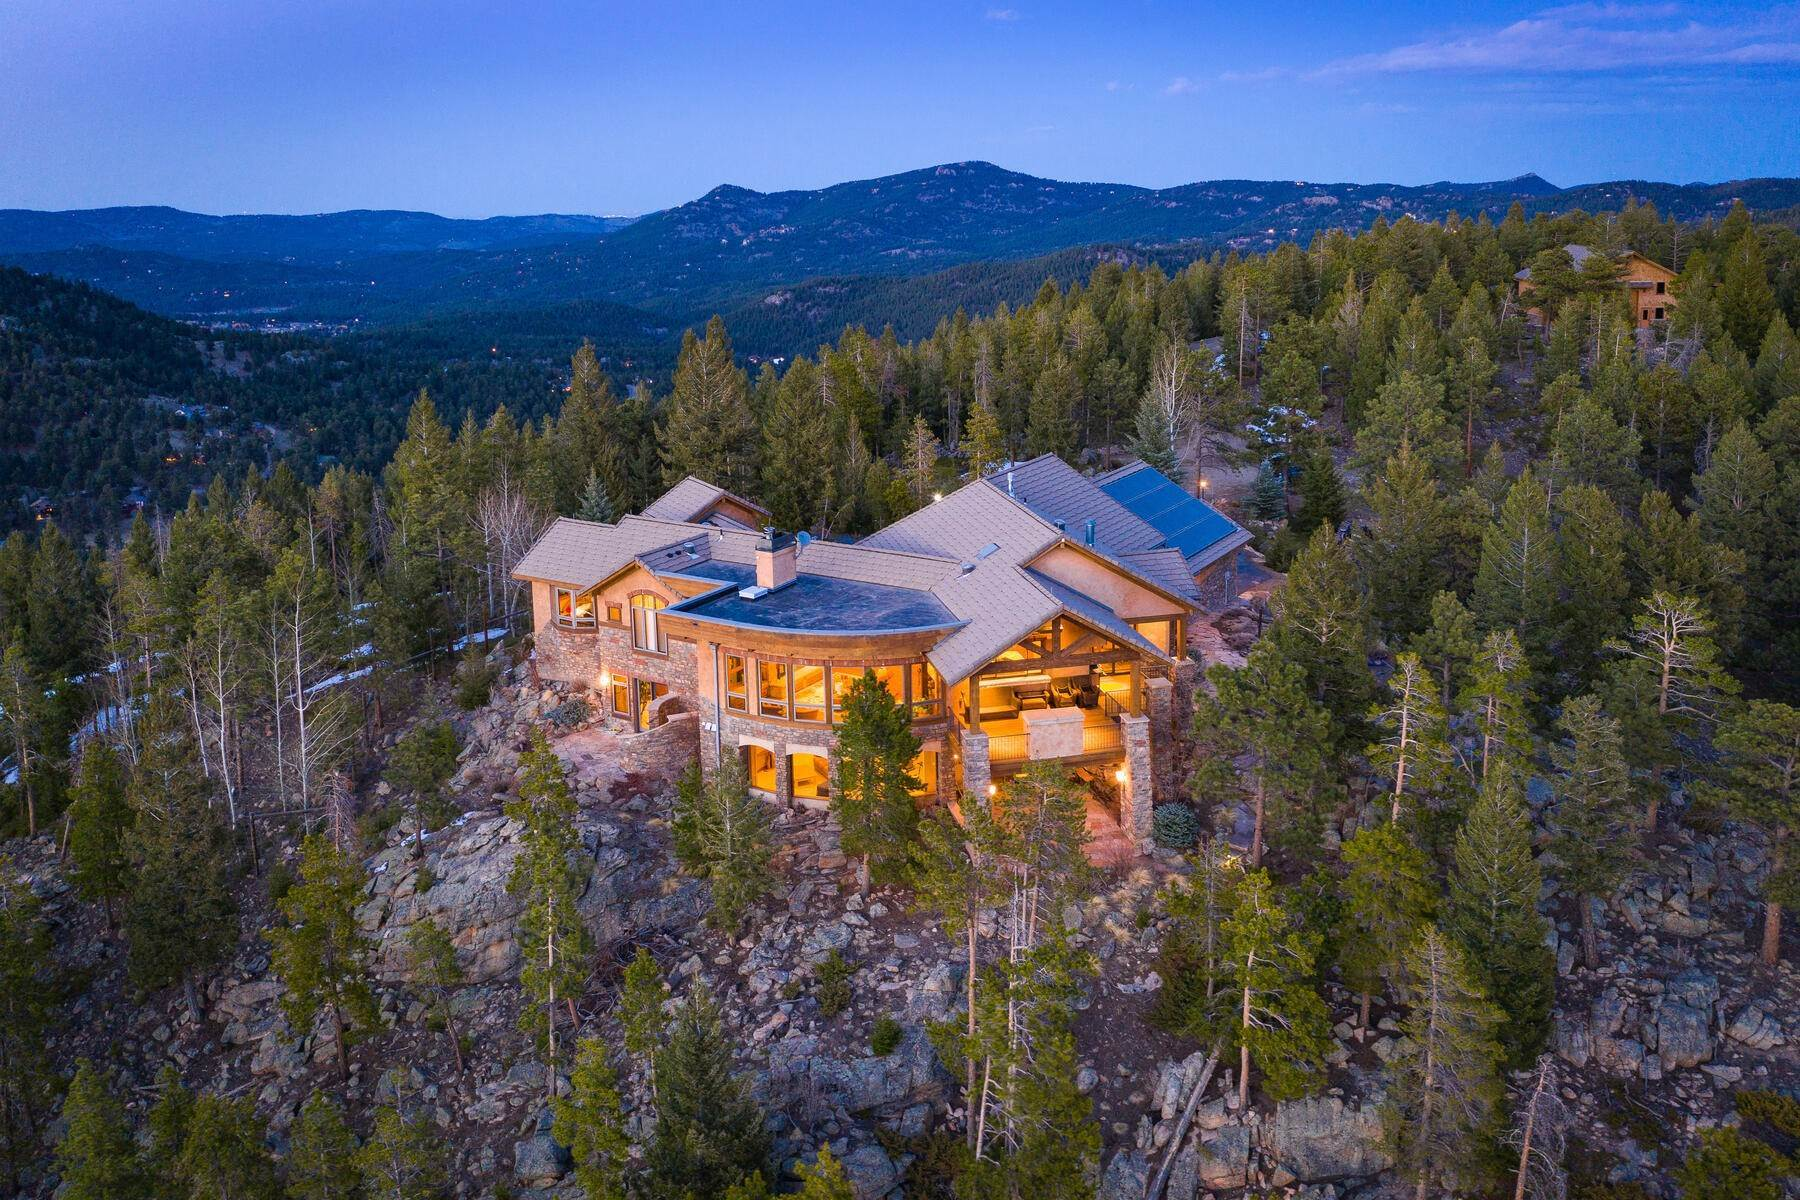 Single Family Homes for Active at Magnificent Mountain Contemporary Home! 32024 Snowshoe Road Evergreen, Colorado 80439 United States